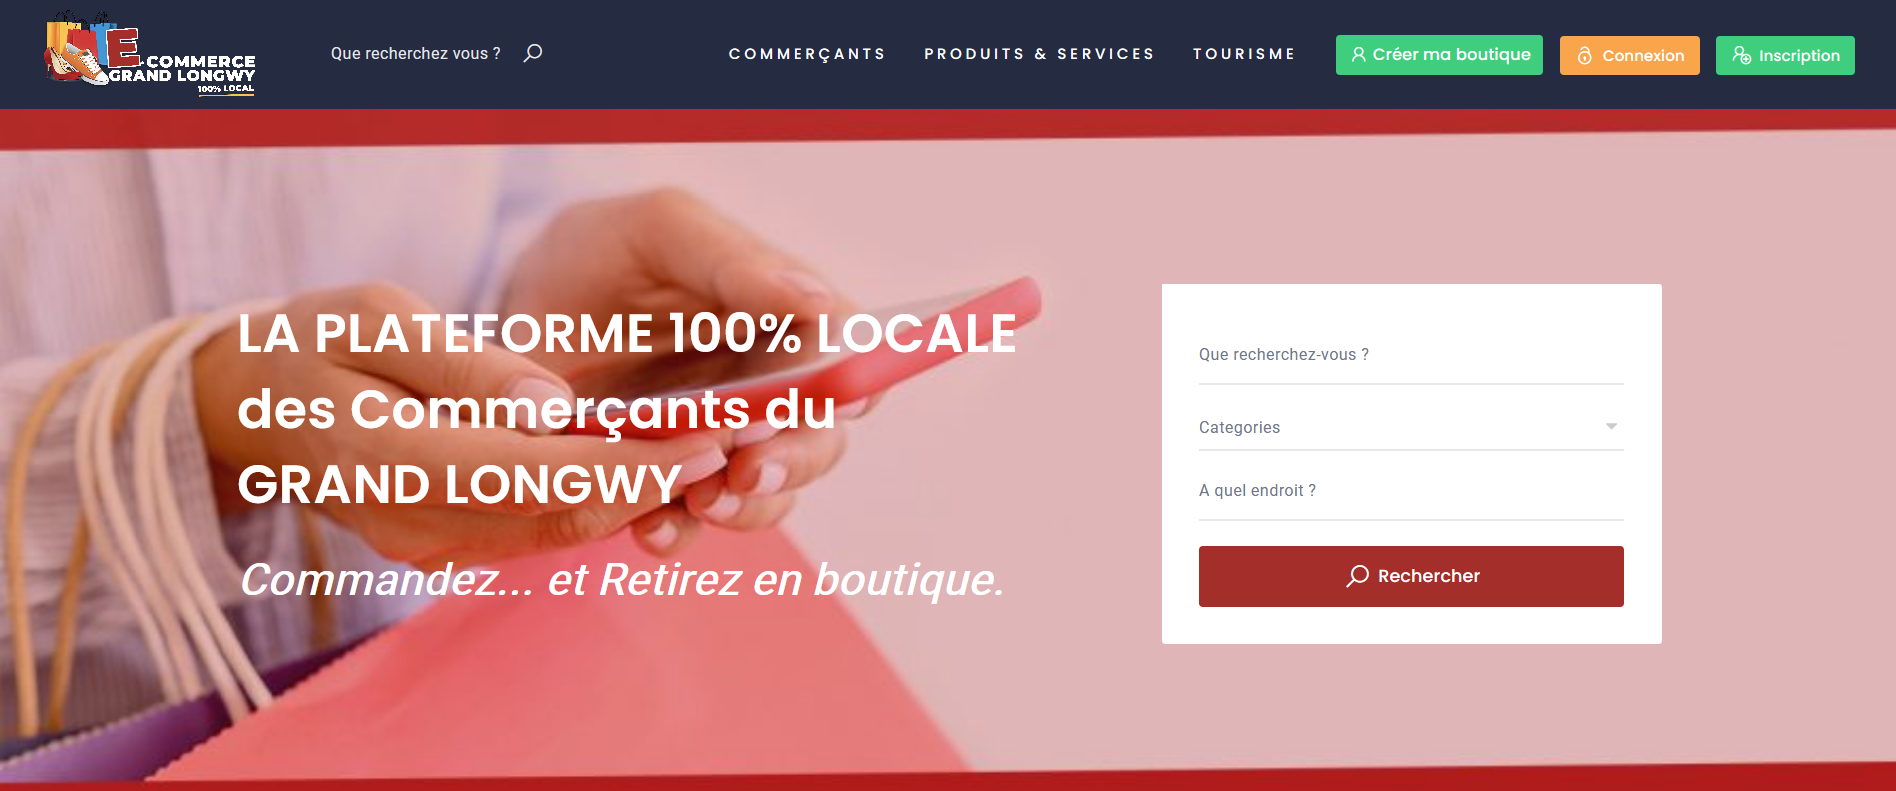 Marketplaces-communauté-grand-longwy